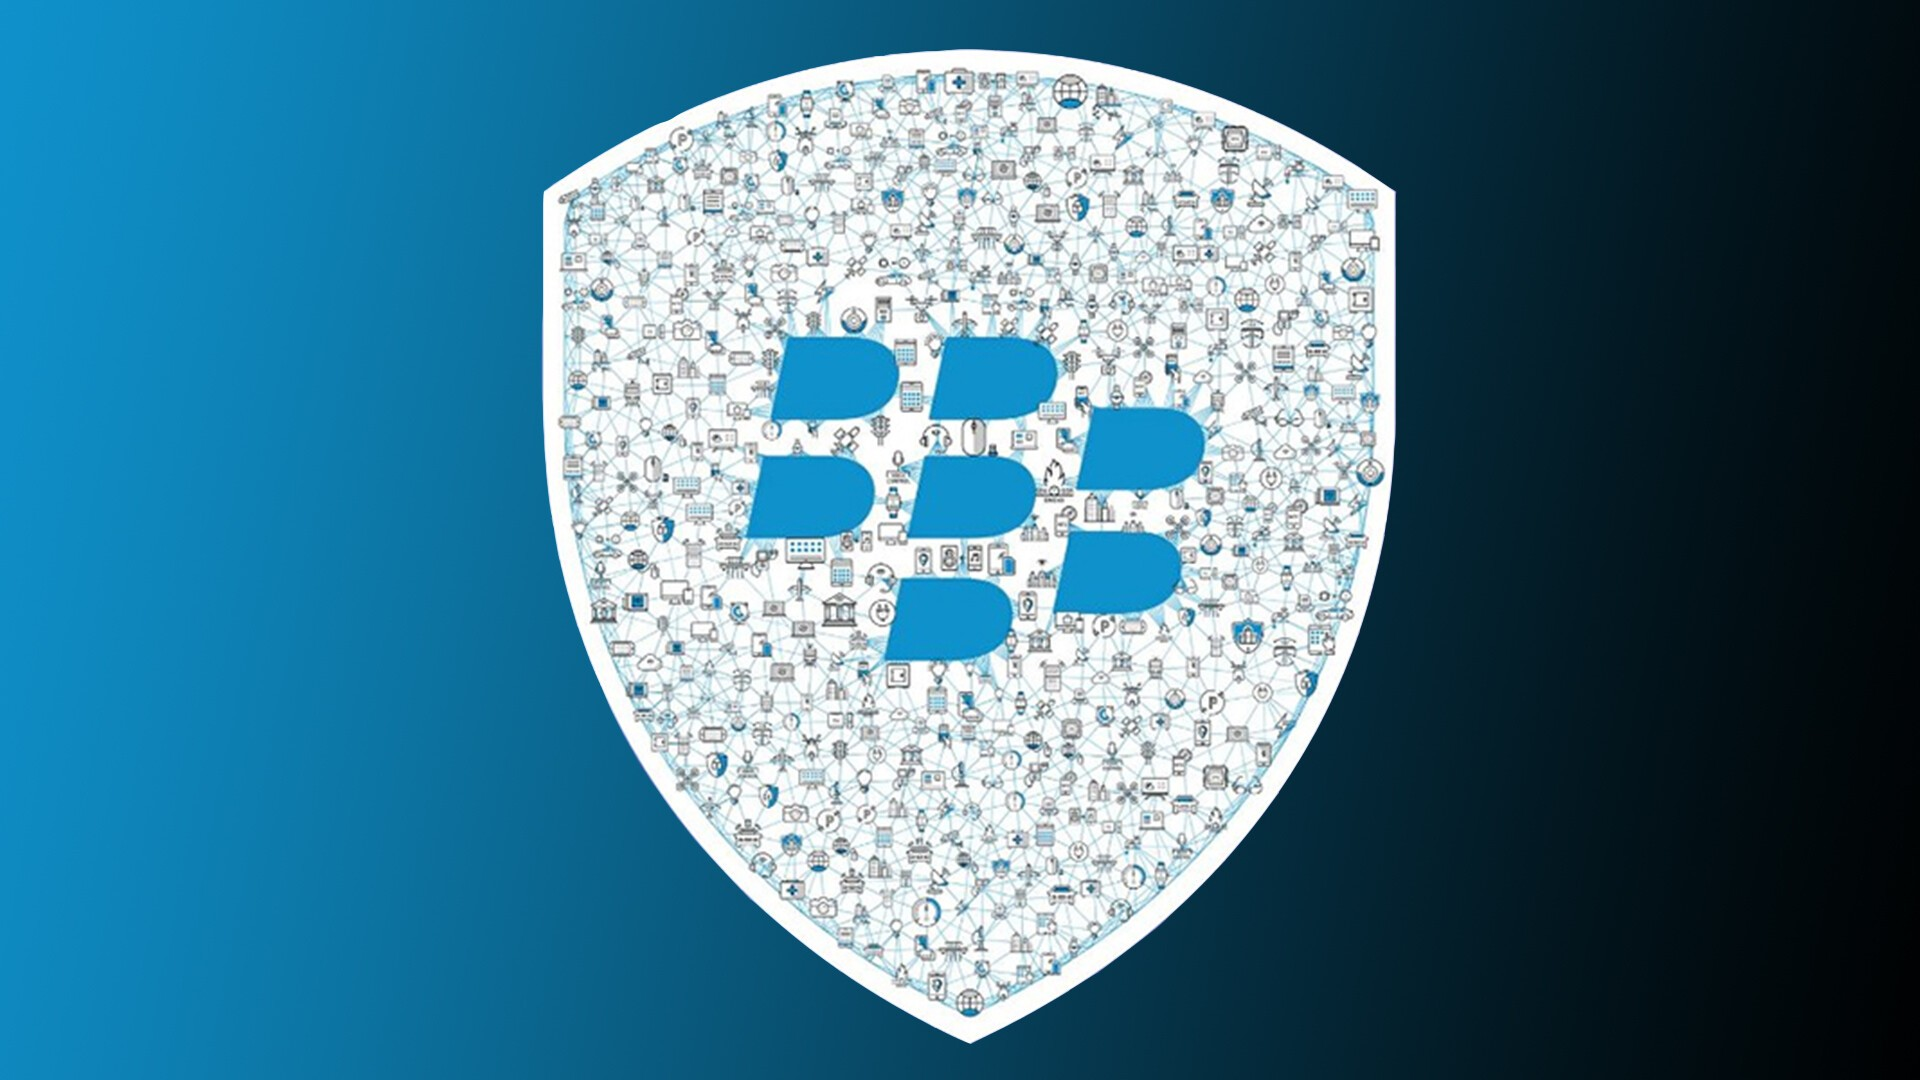 Hong Kong banks embracing BlackBerry software and services